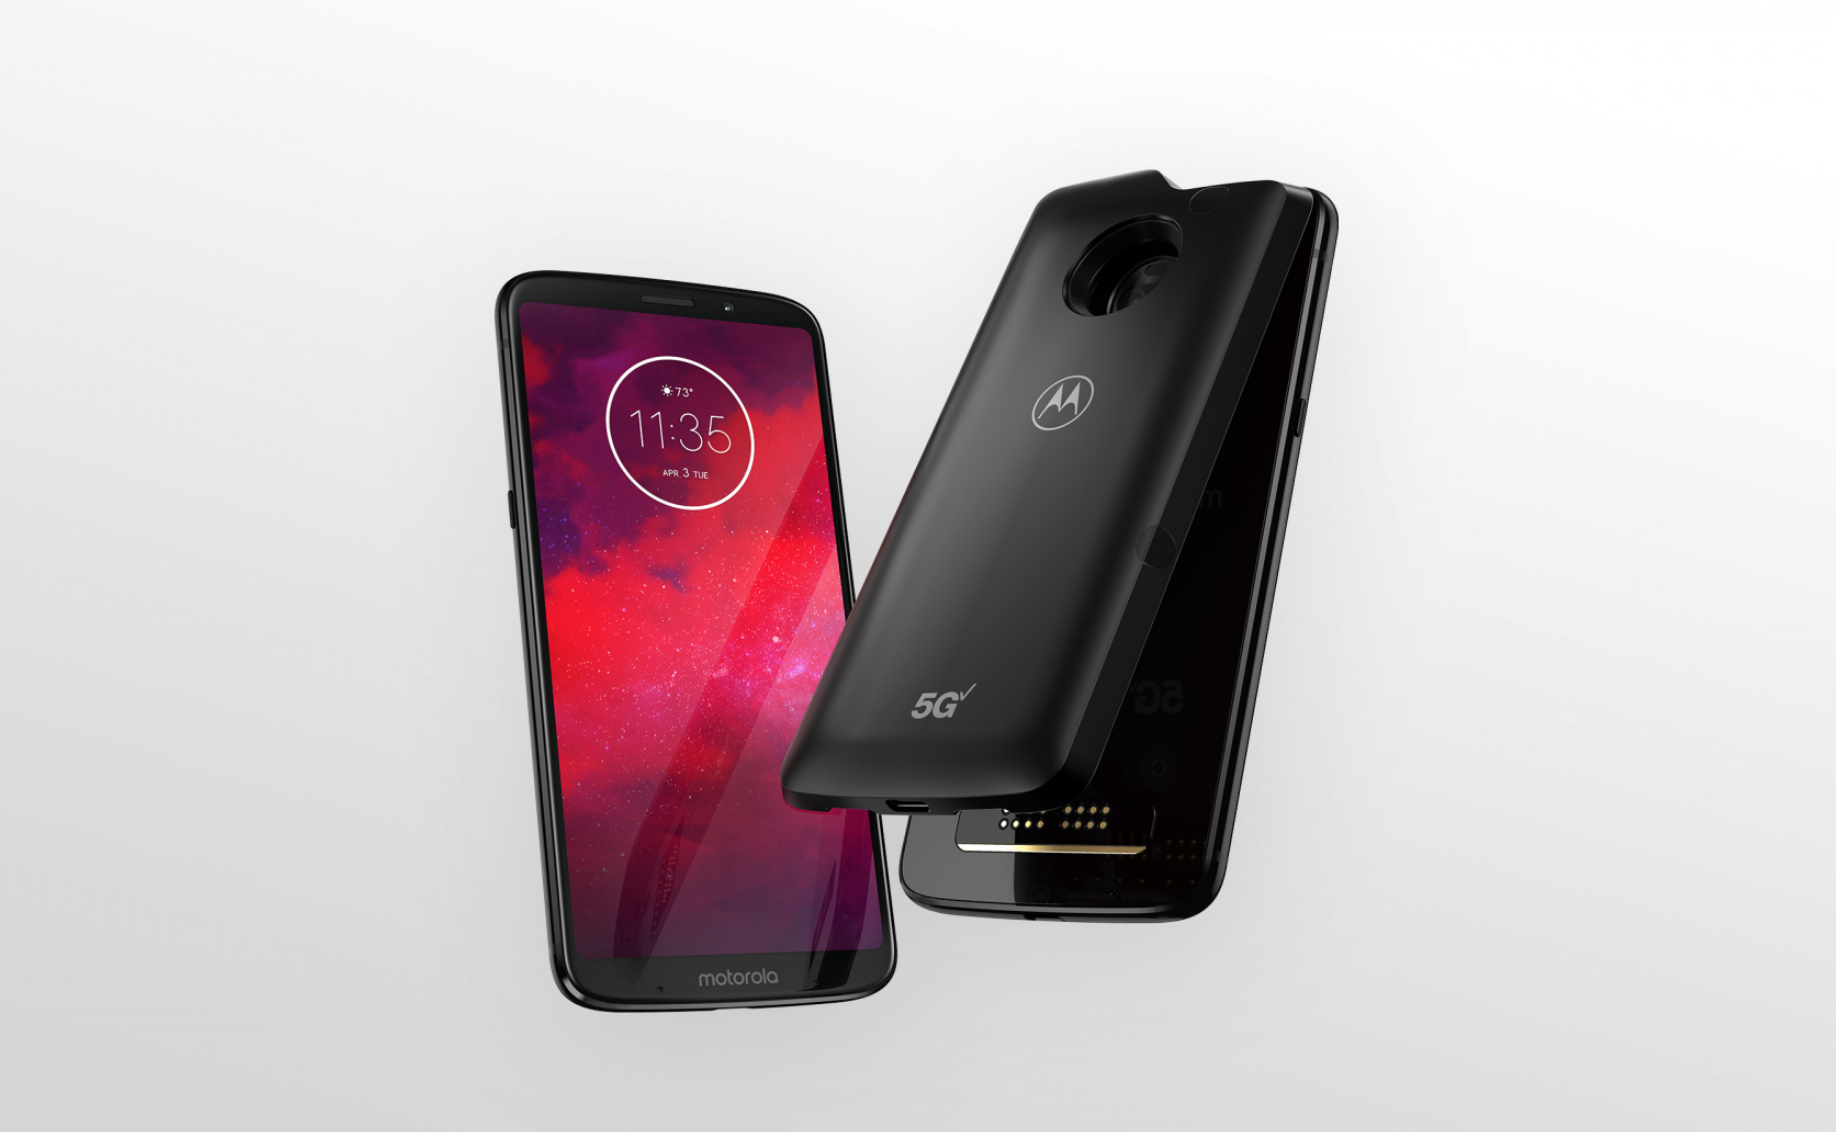 Motorola's new Z3 smartphone and a 5G add-on module